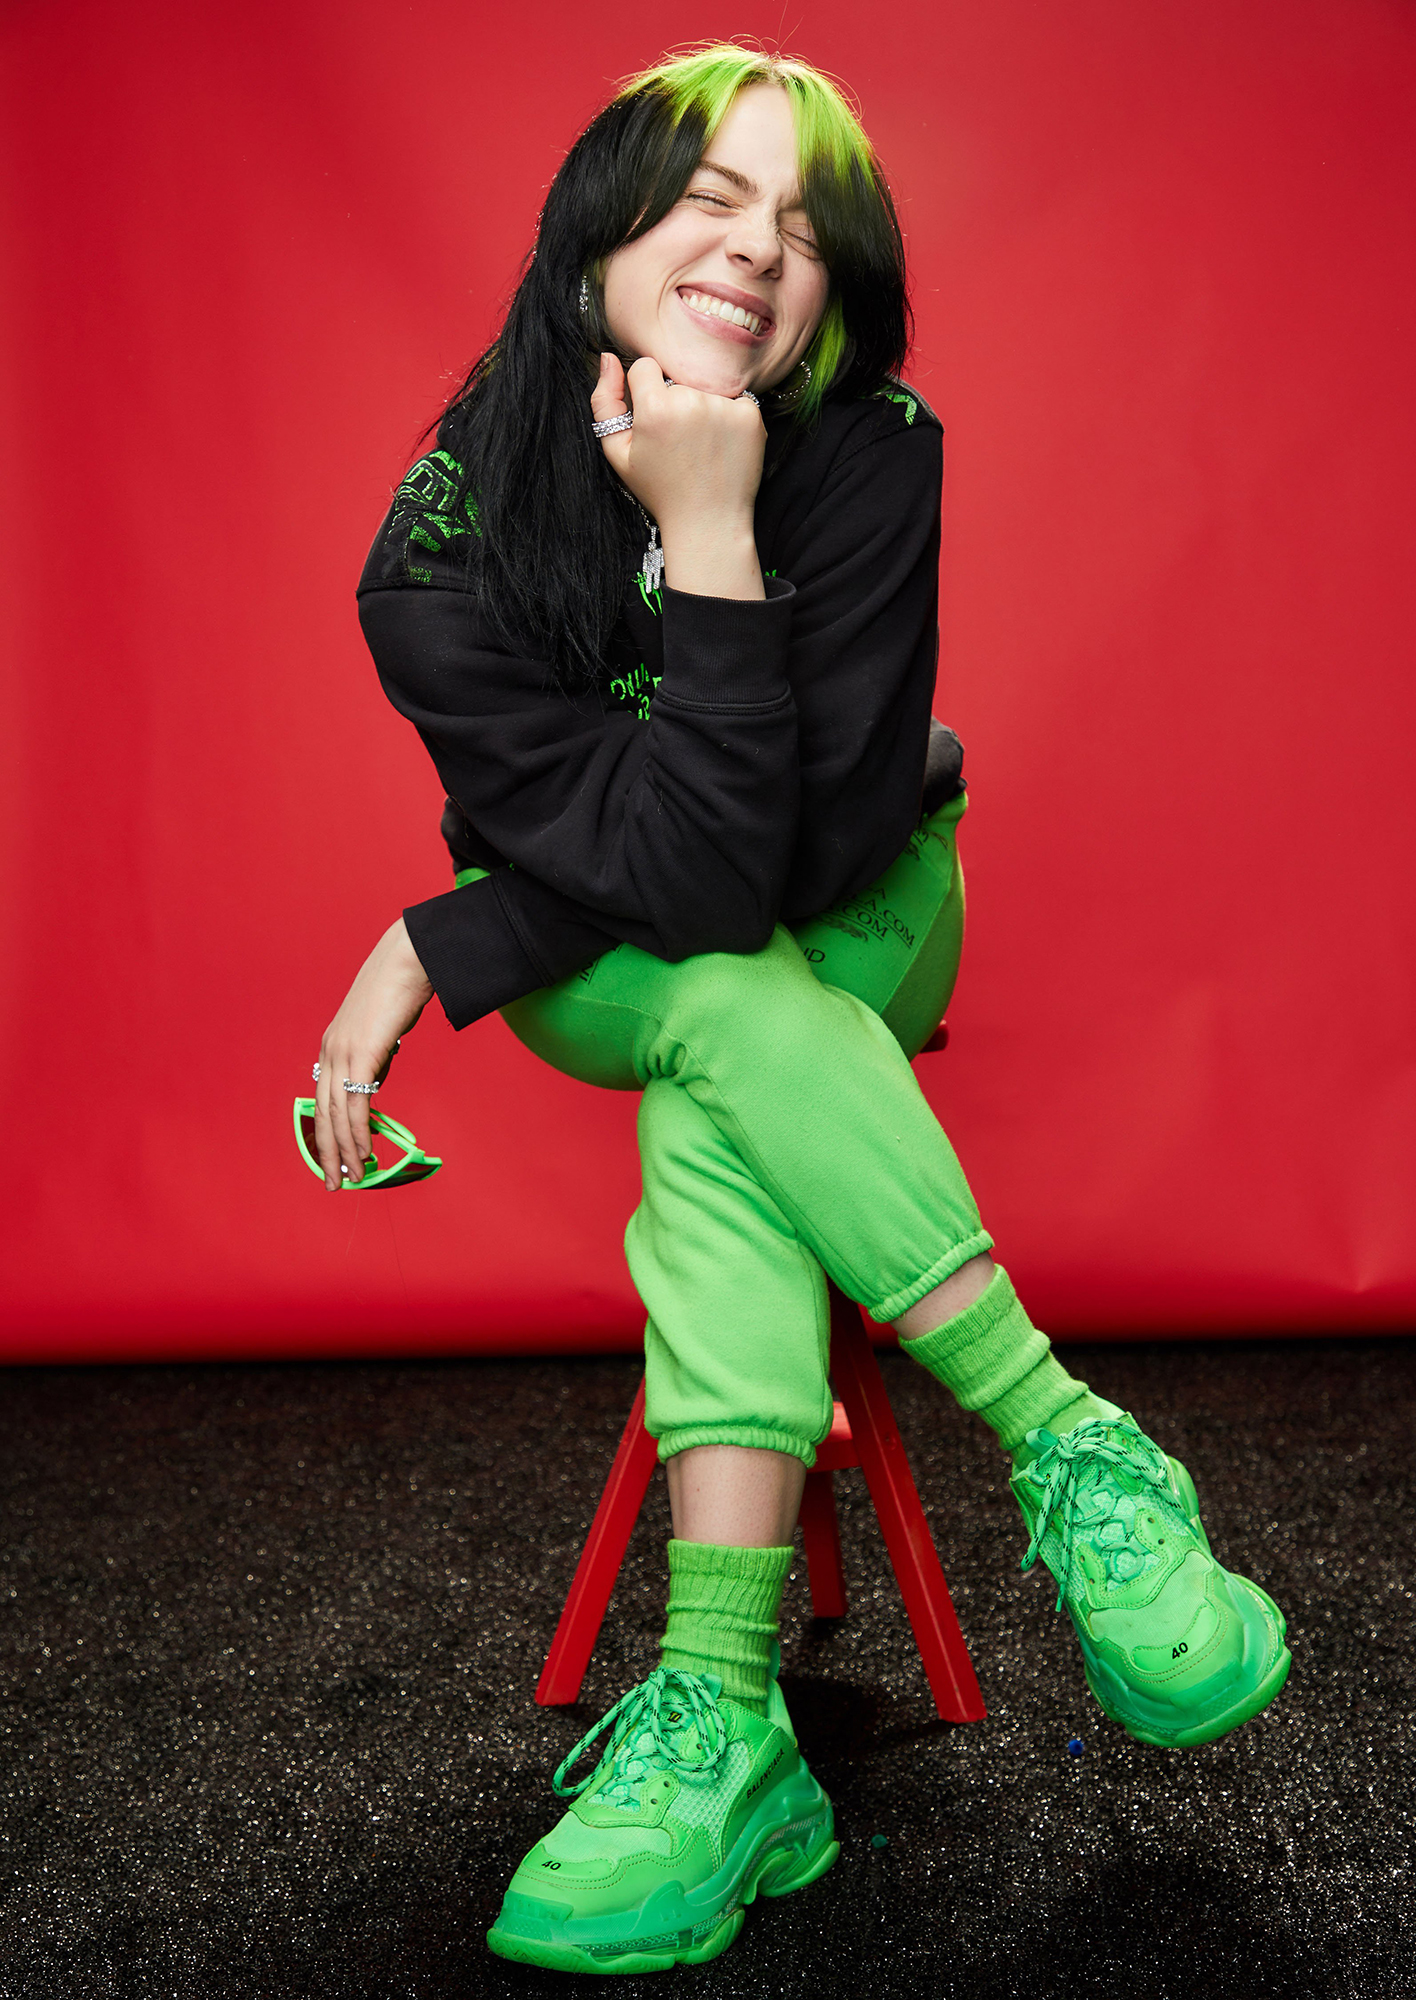 Billie Eilish Is 'in a Much Better Place' After Adjusting to Newfound Fame